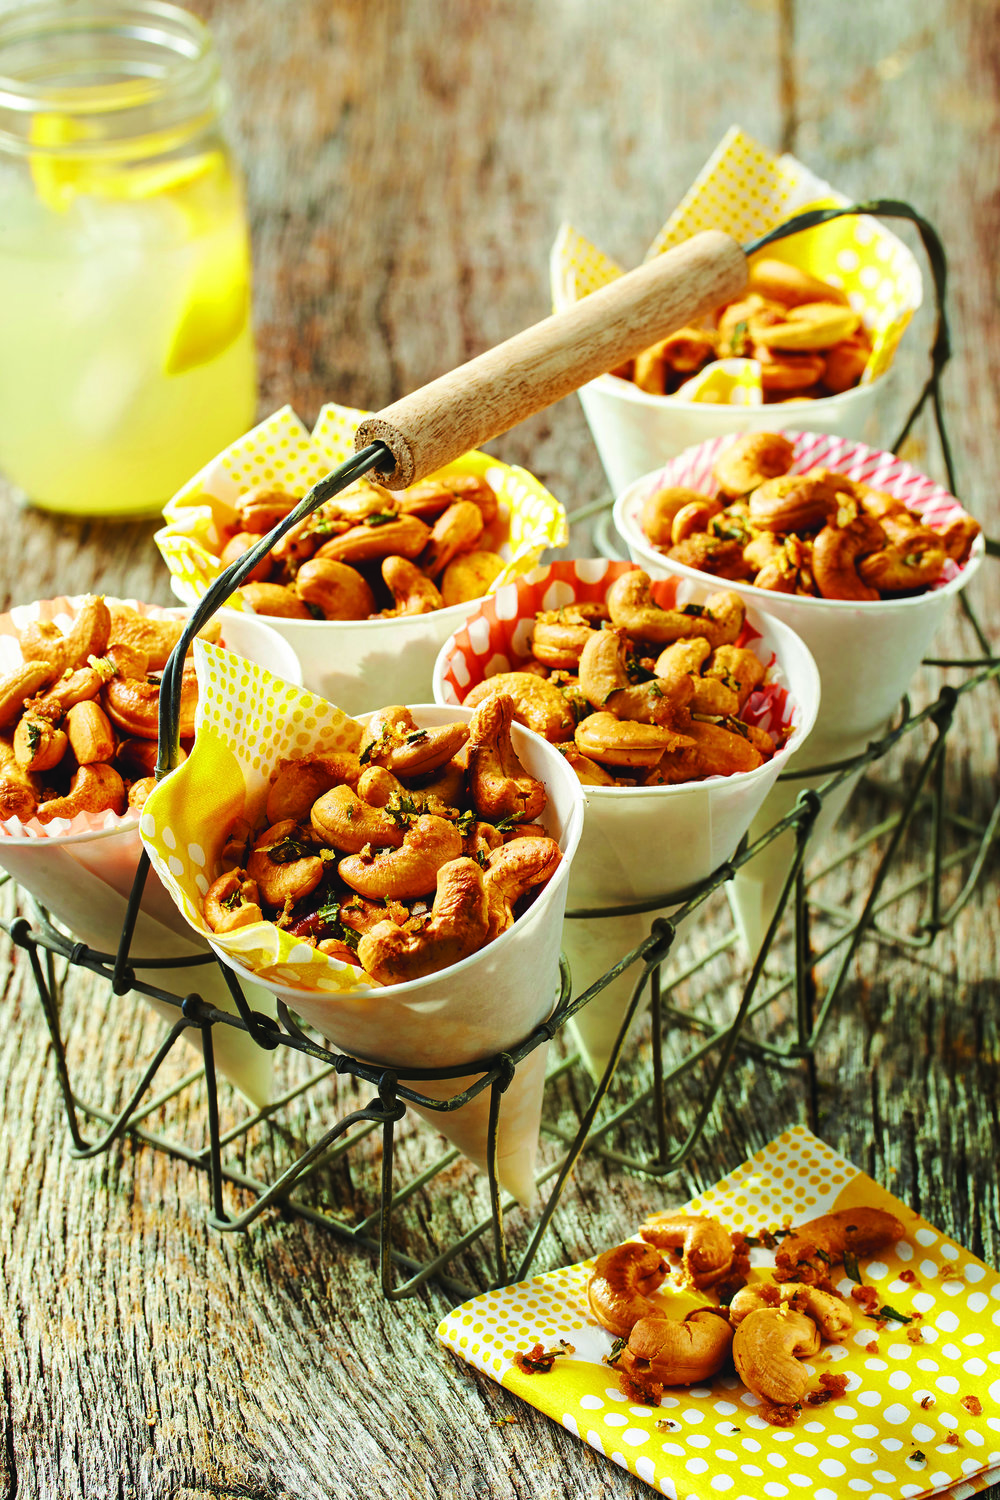 Roasted Cashews with Rosemary.jpg